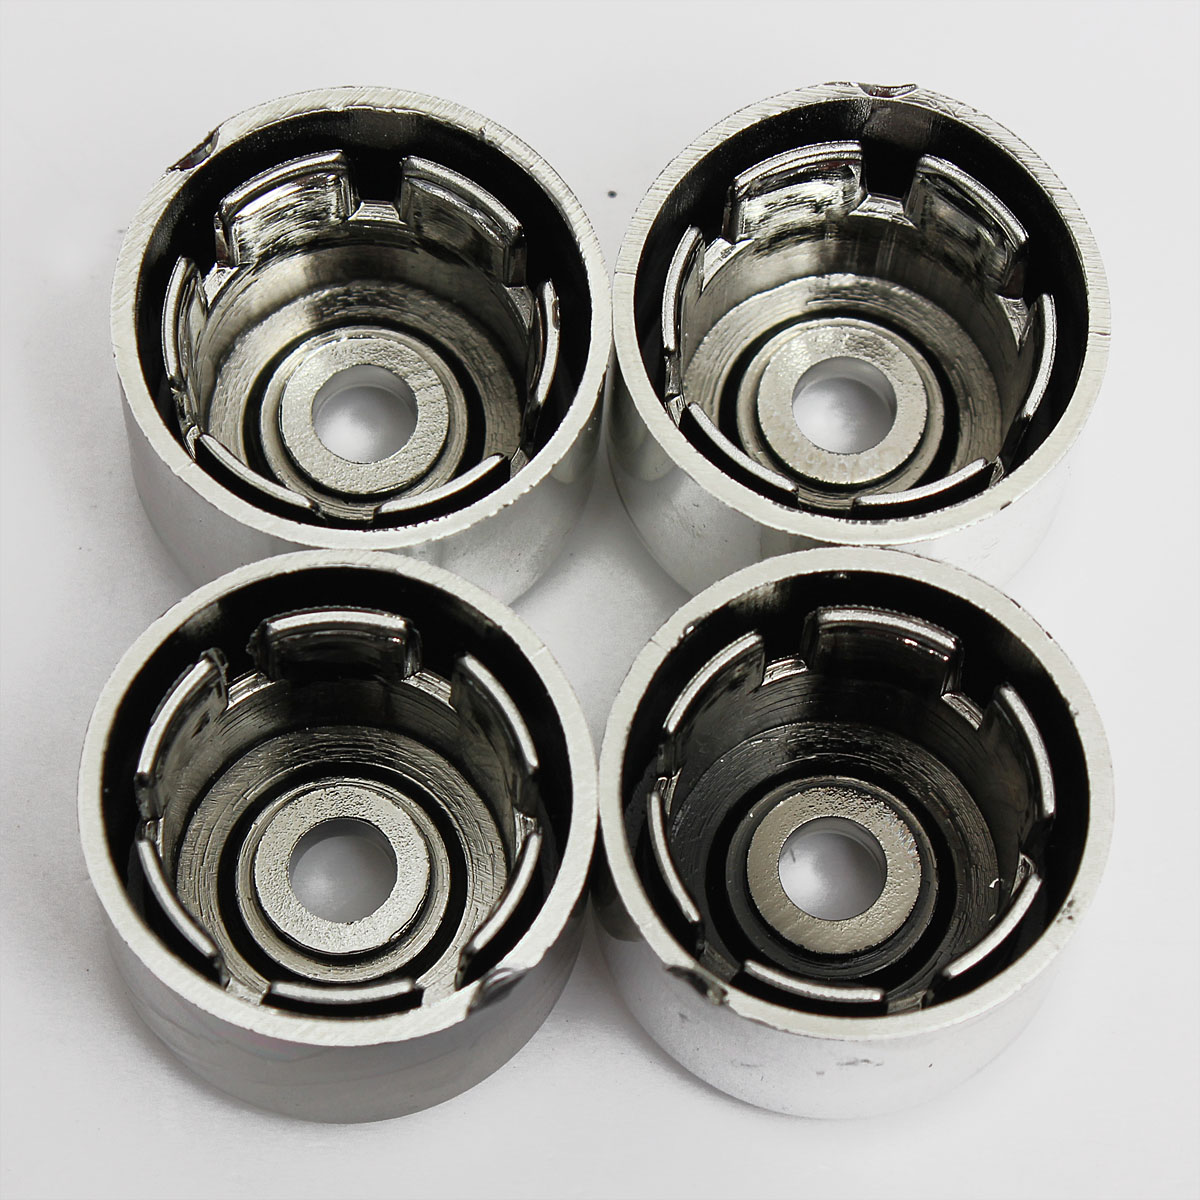 17MM Chrome Alloy Wheel Locking Nut Bolts Covers Caps for VW GOLF PASSAT POLO